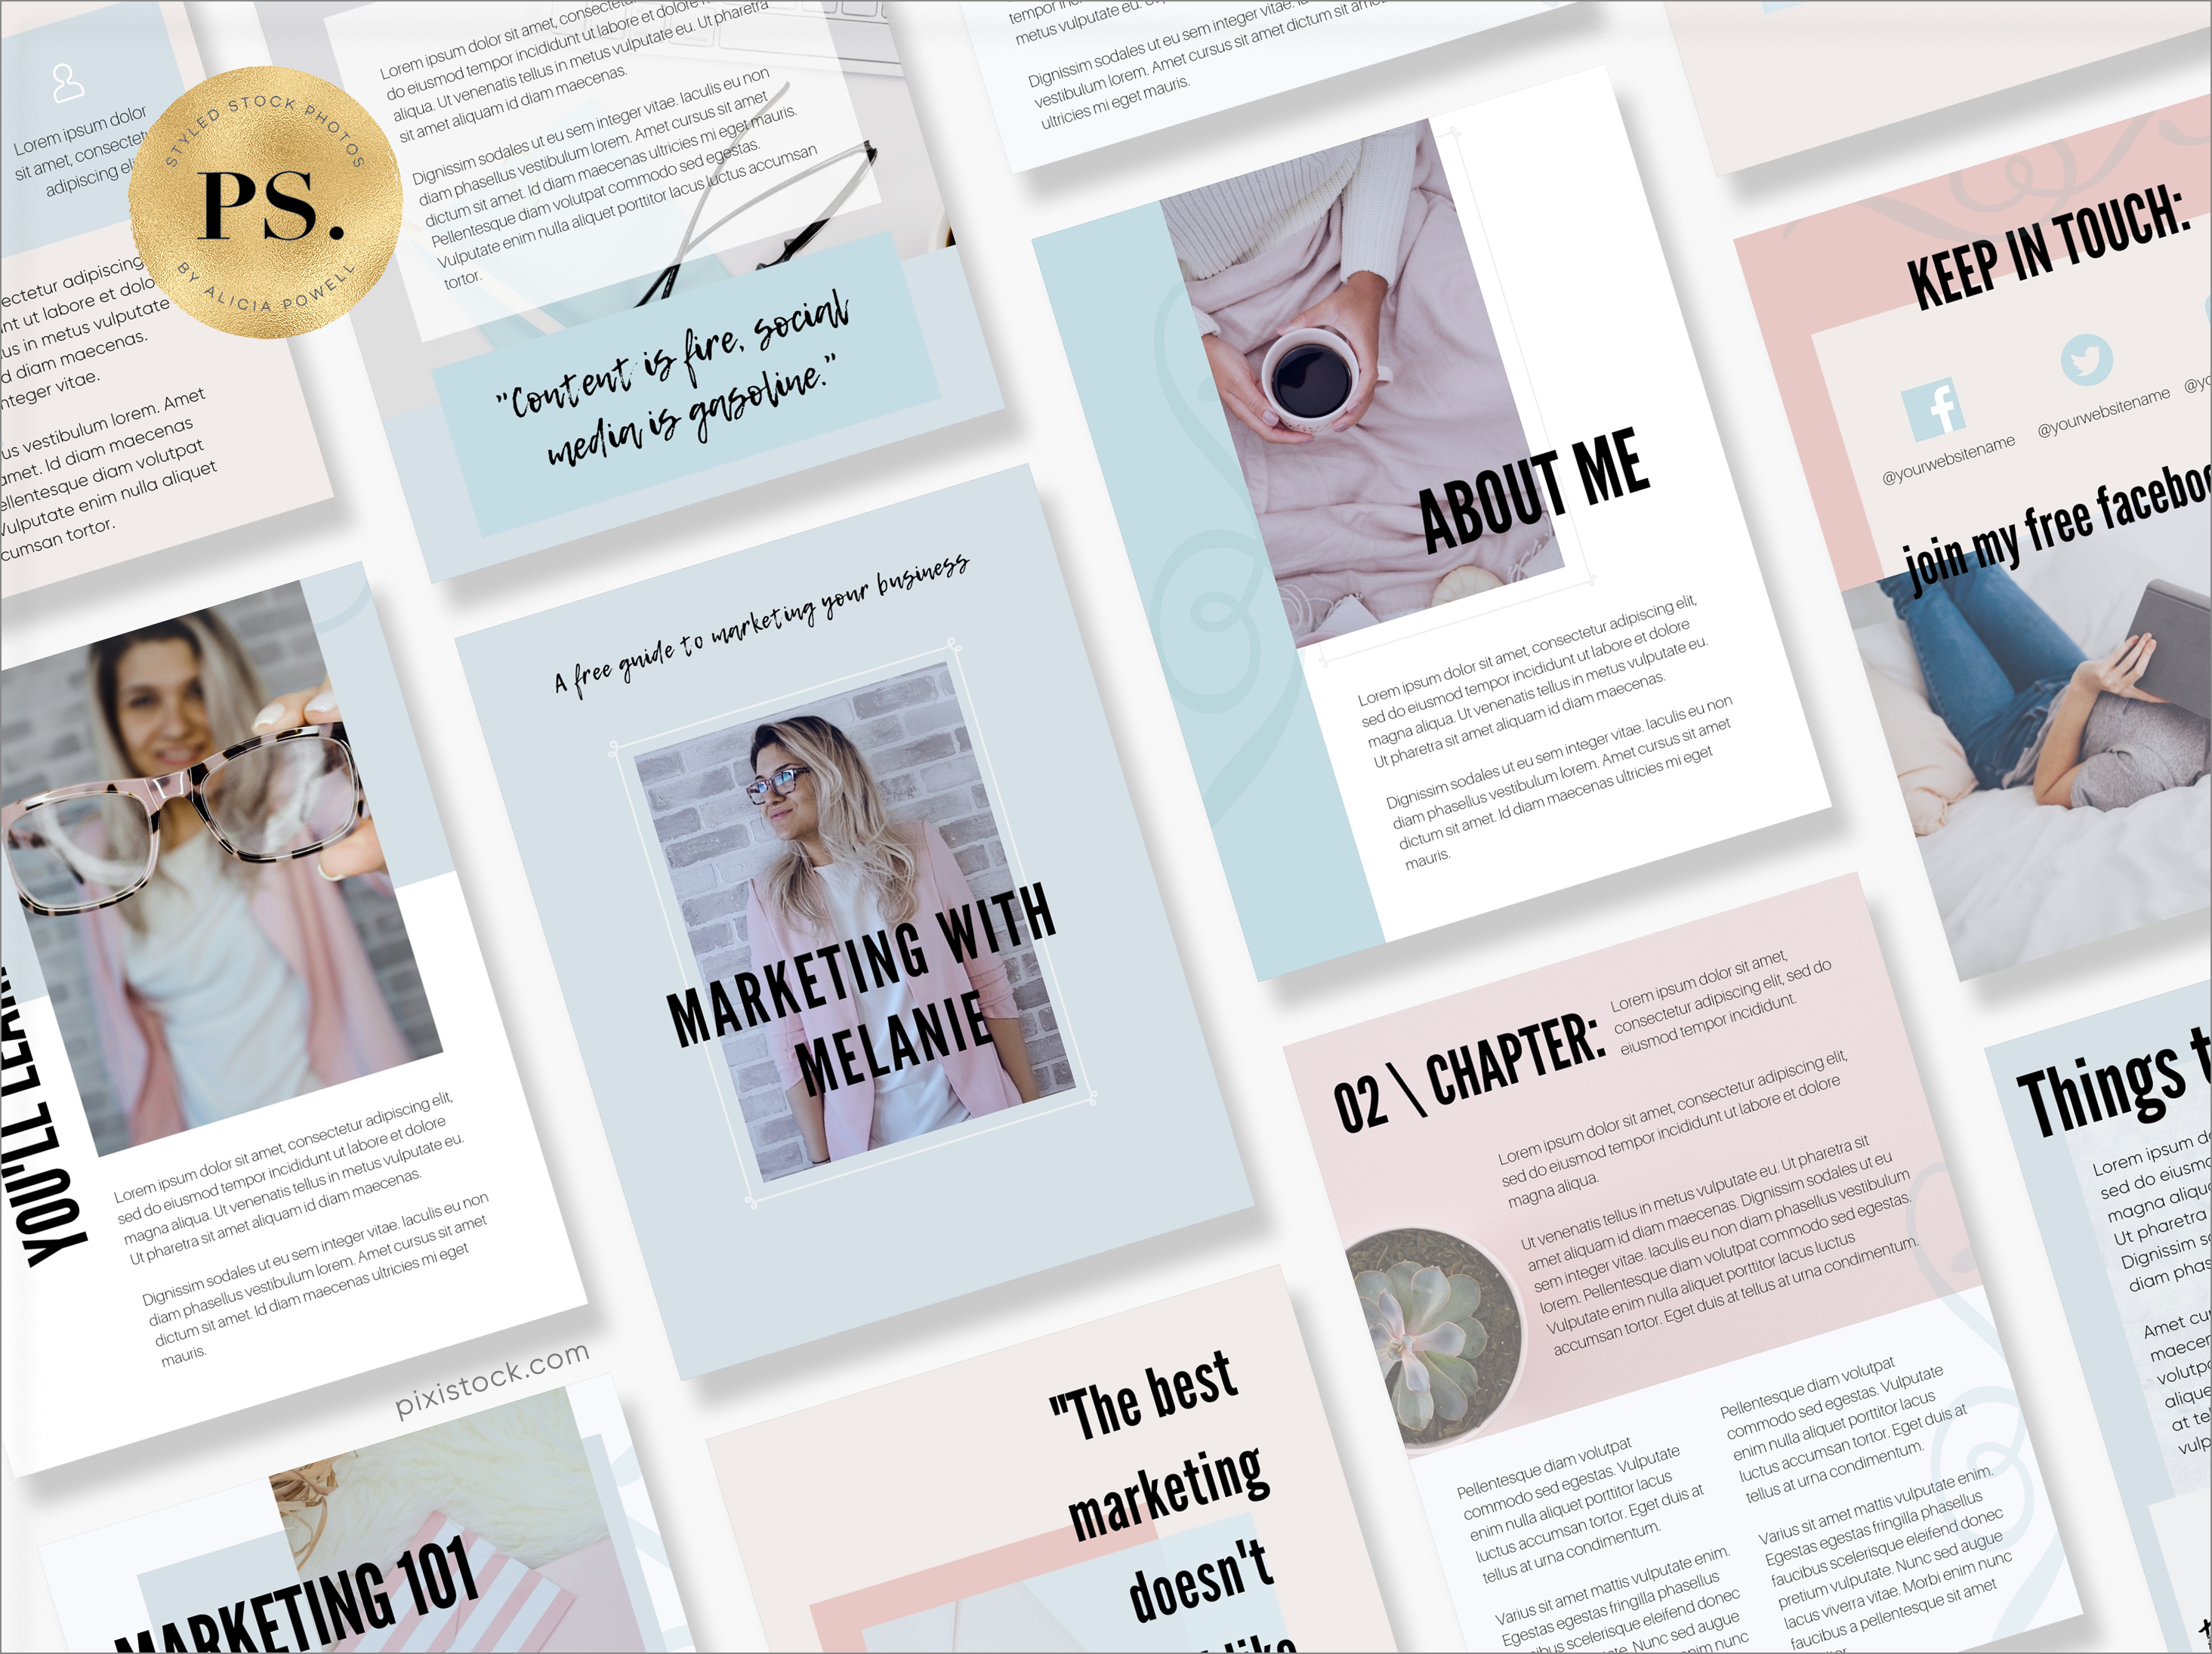 Canva Template Ebook by Pixistock - The Confident Business